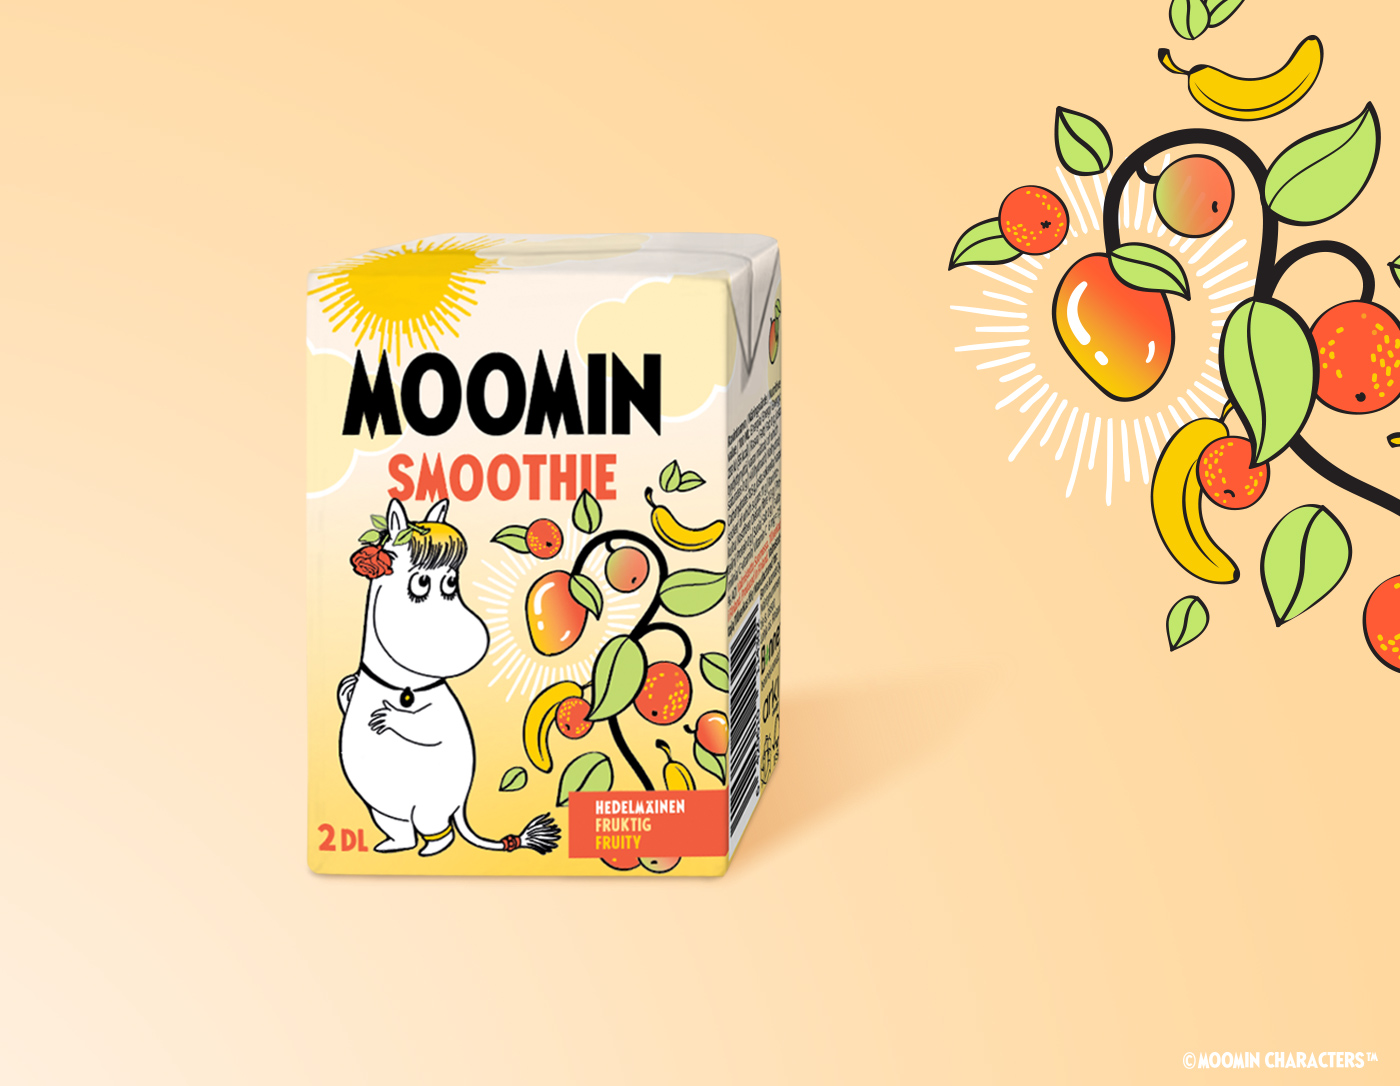 moomin_smoothie_packaging design_1400x10